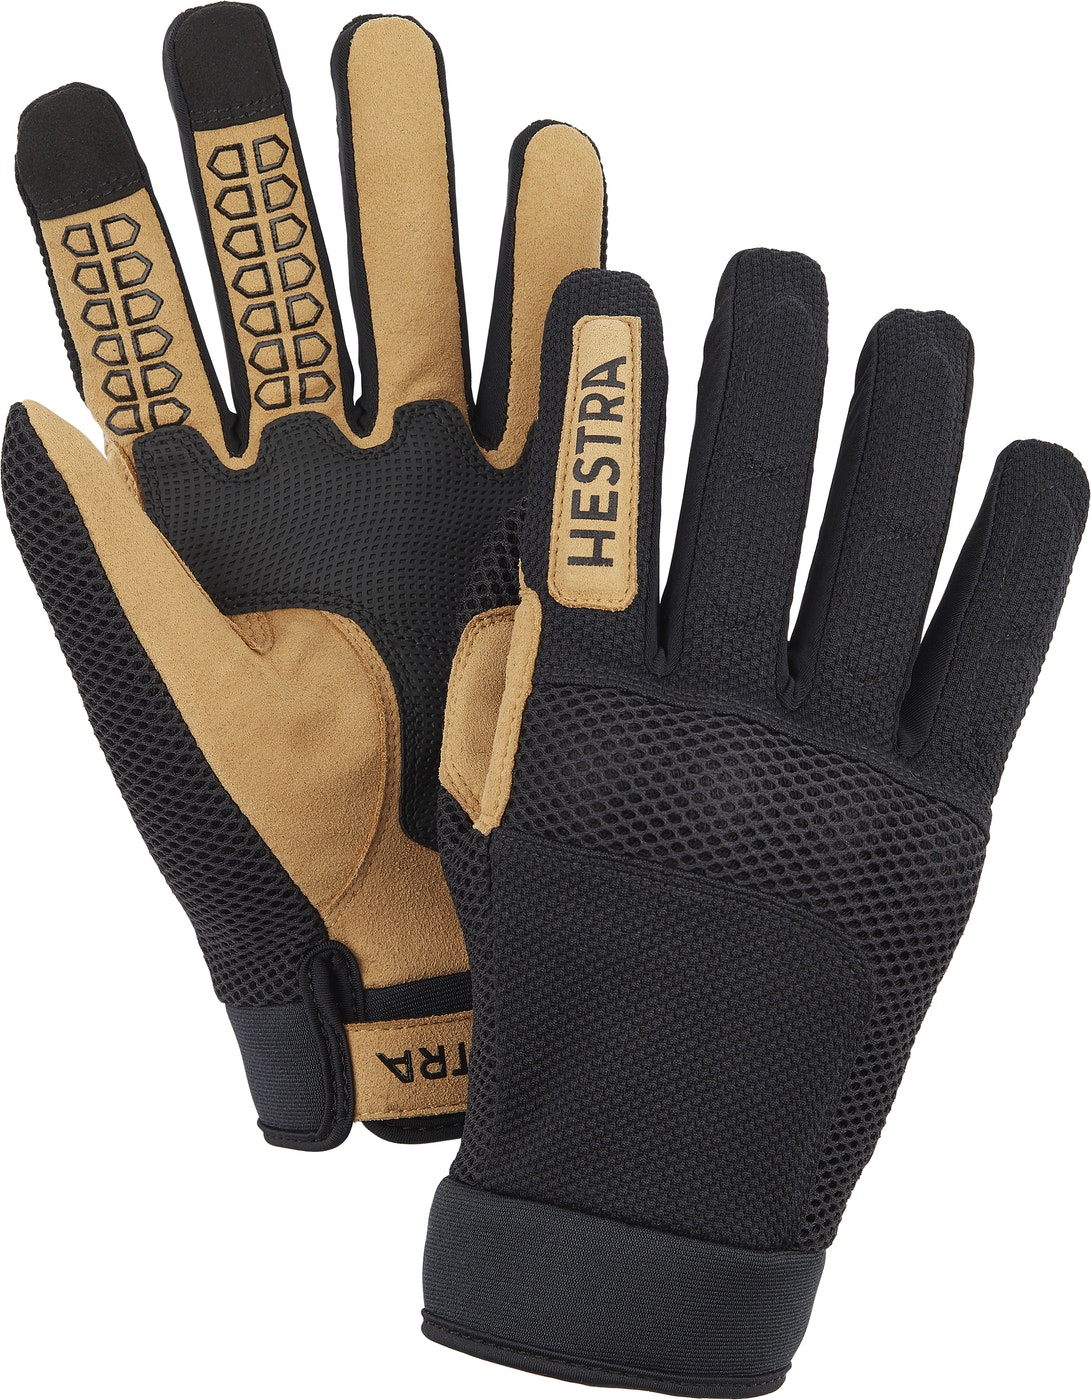 Product image for 39830 All Mountain Sr. - 5 finger